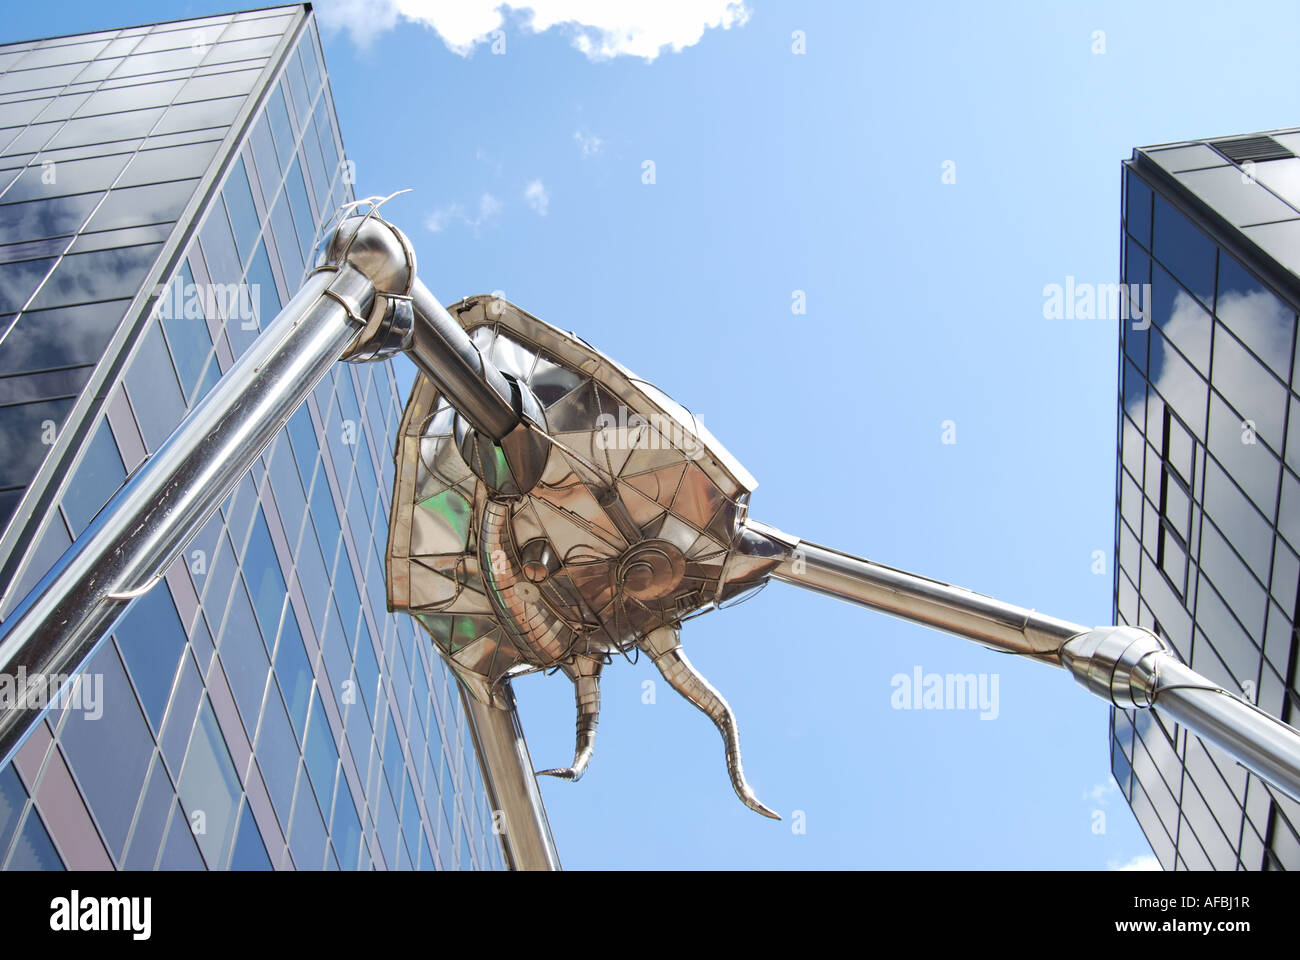 'War of the Worlds' Martian sculpture, Town Centre, Woking, Surrey, England, United Kingdom - Stock Image